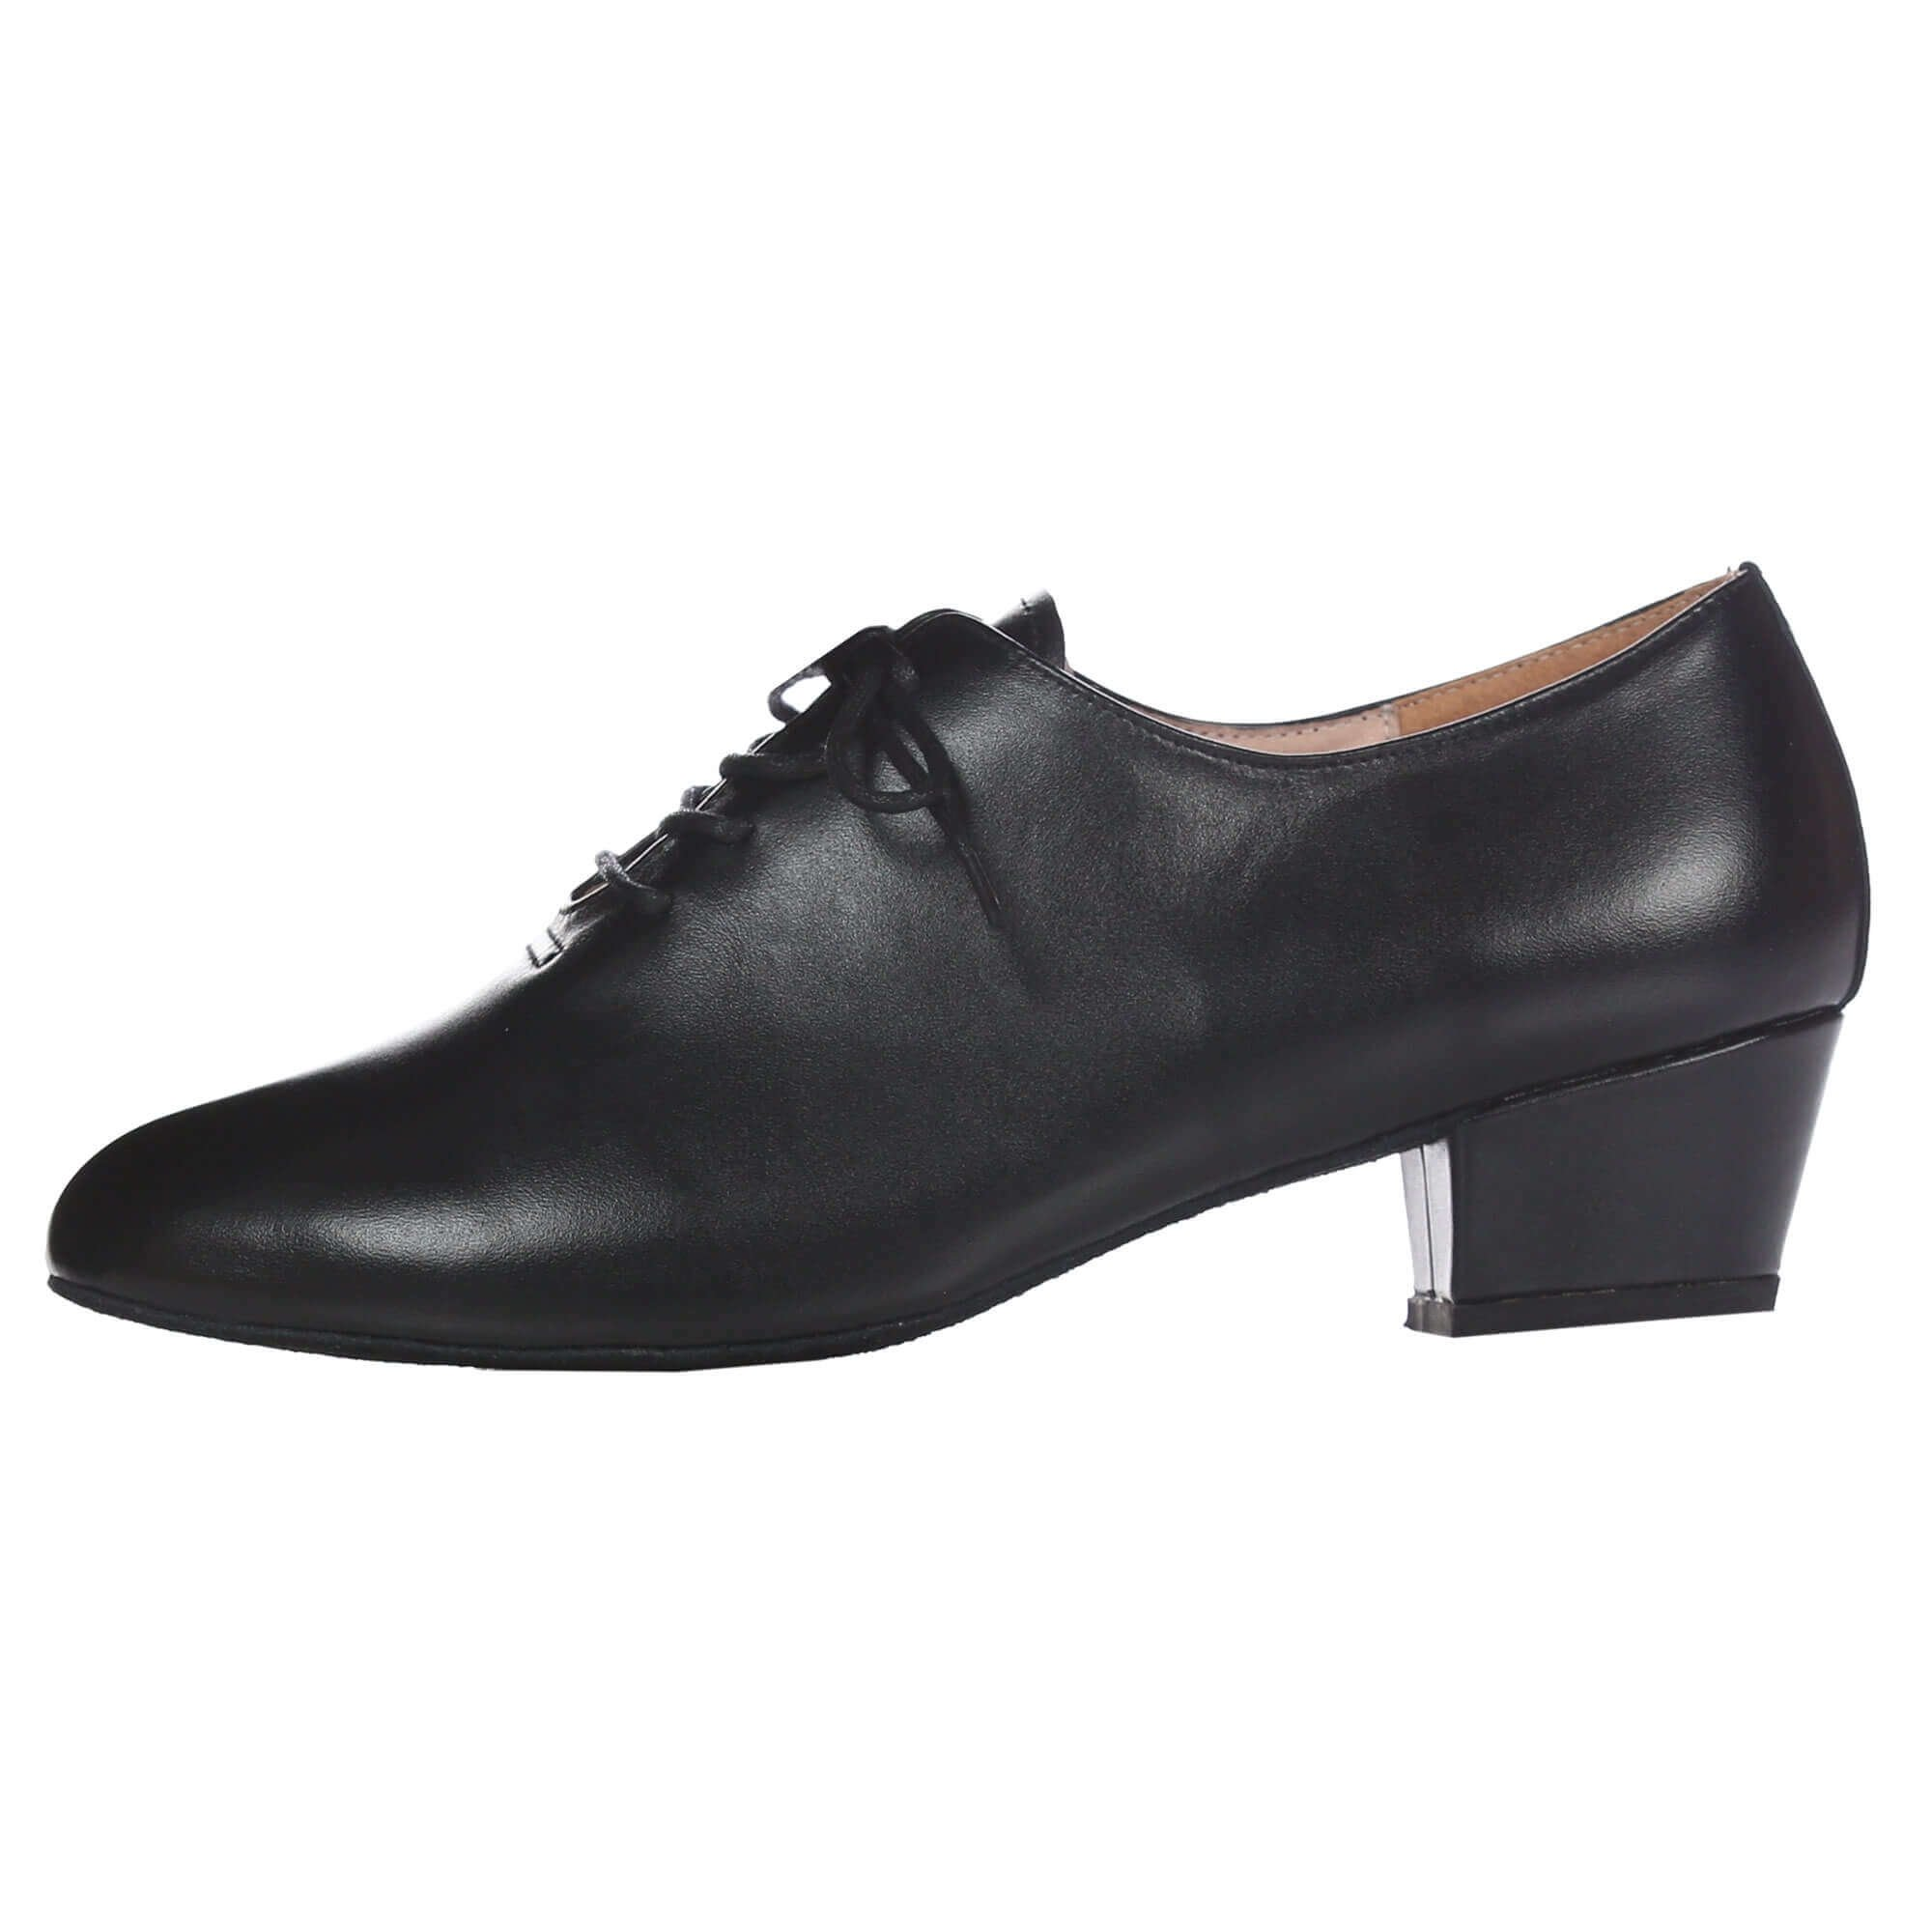 Dimichi Men's Ballroom Dance Shoe